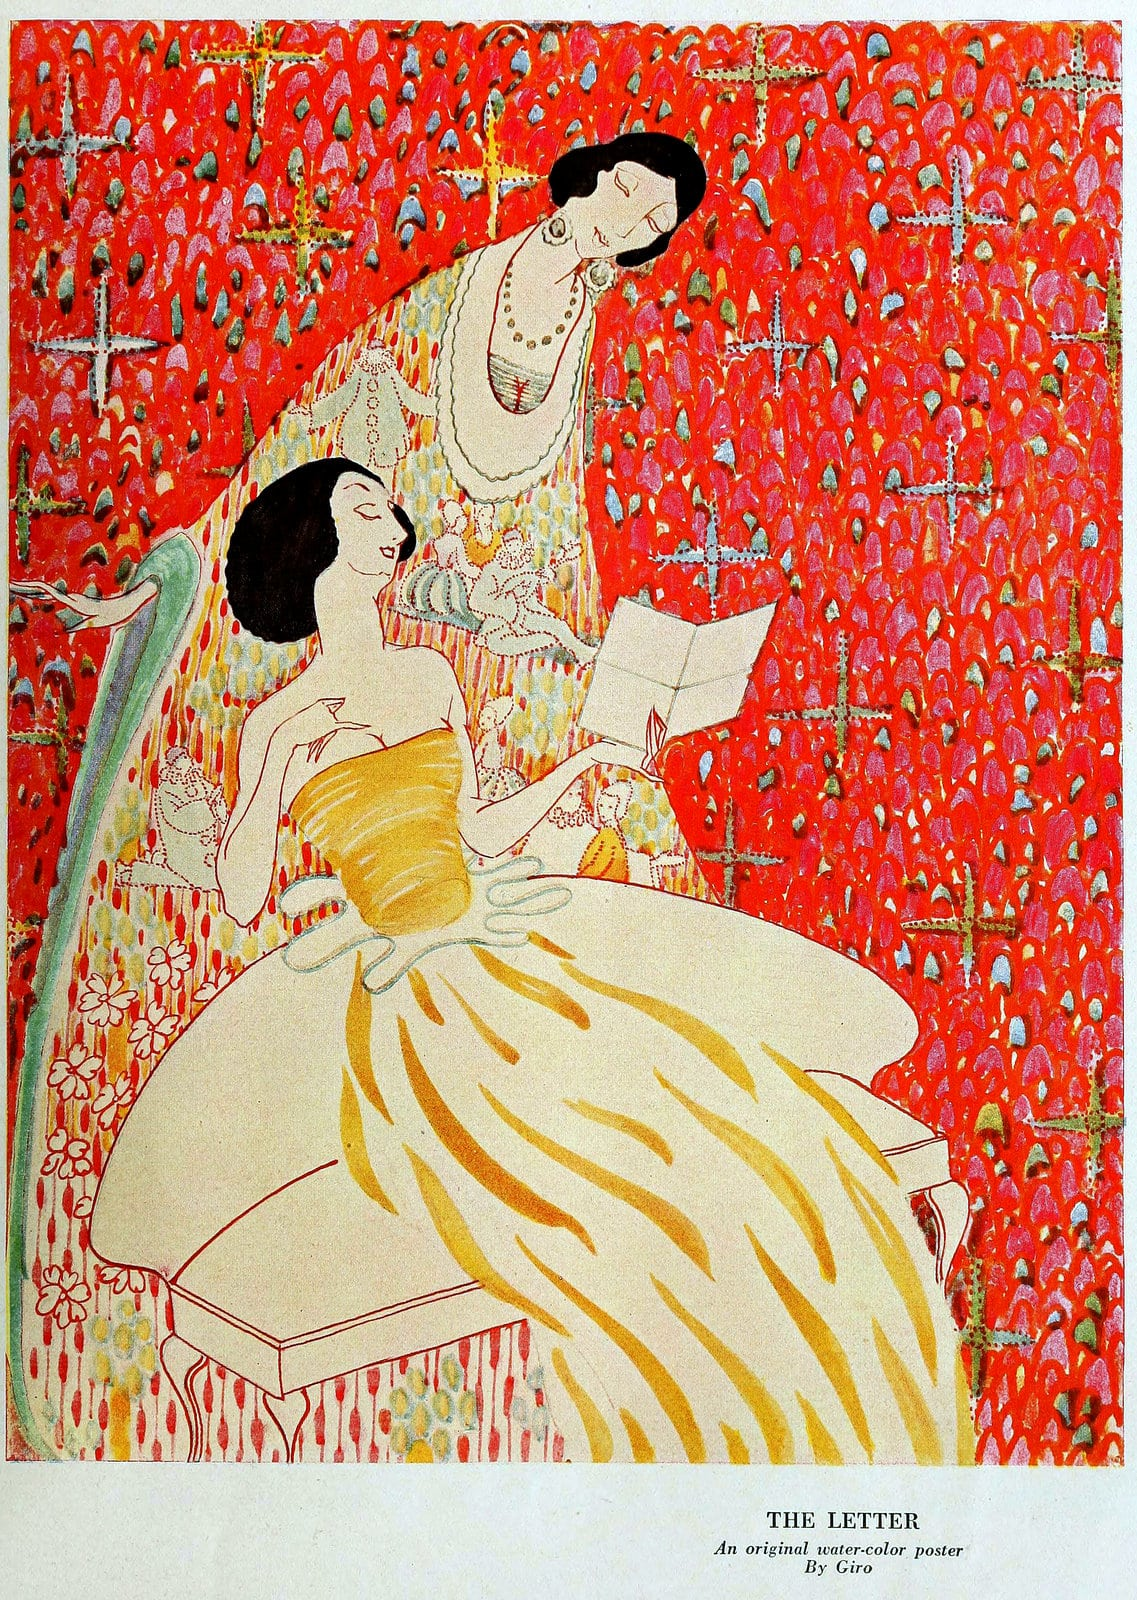 The Letter - Vintage art by Giro (c1915)